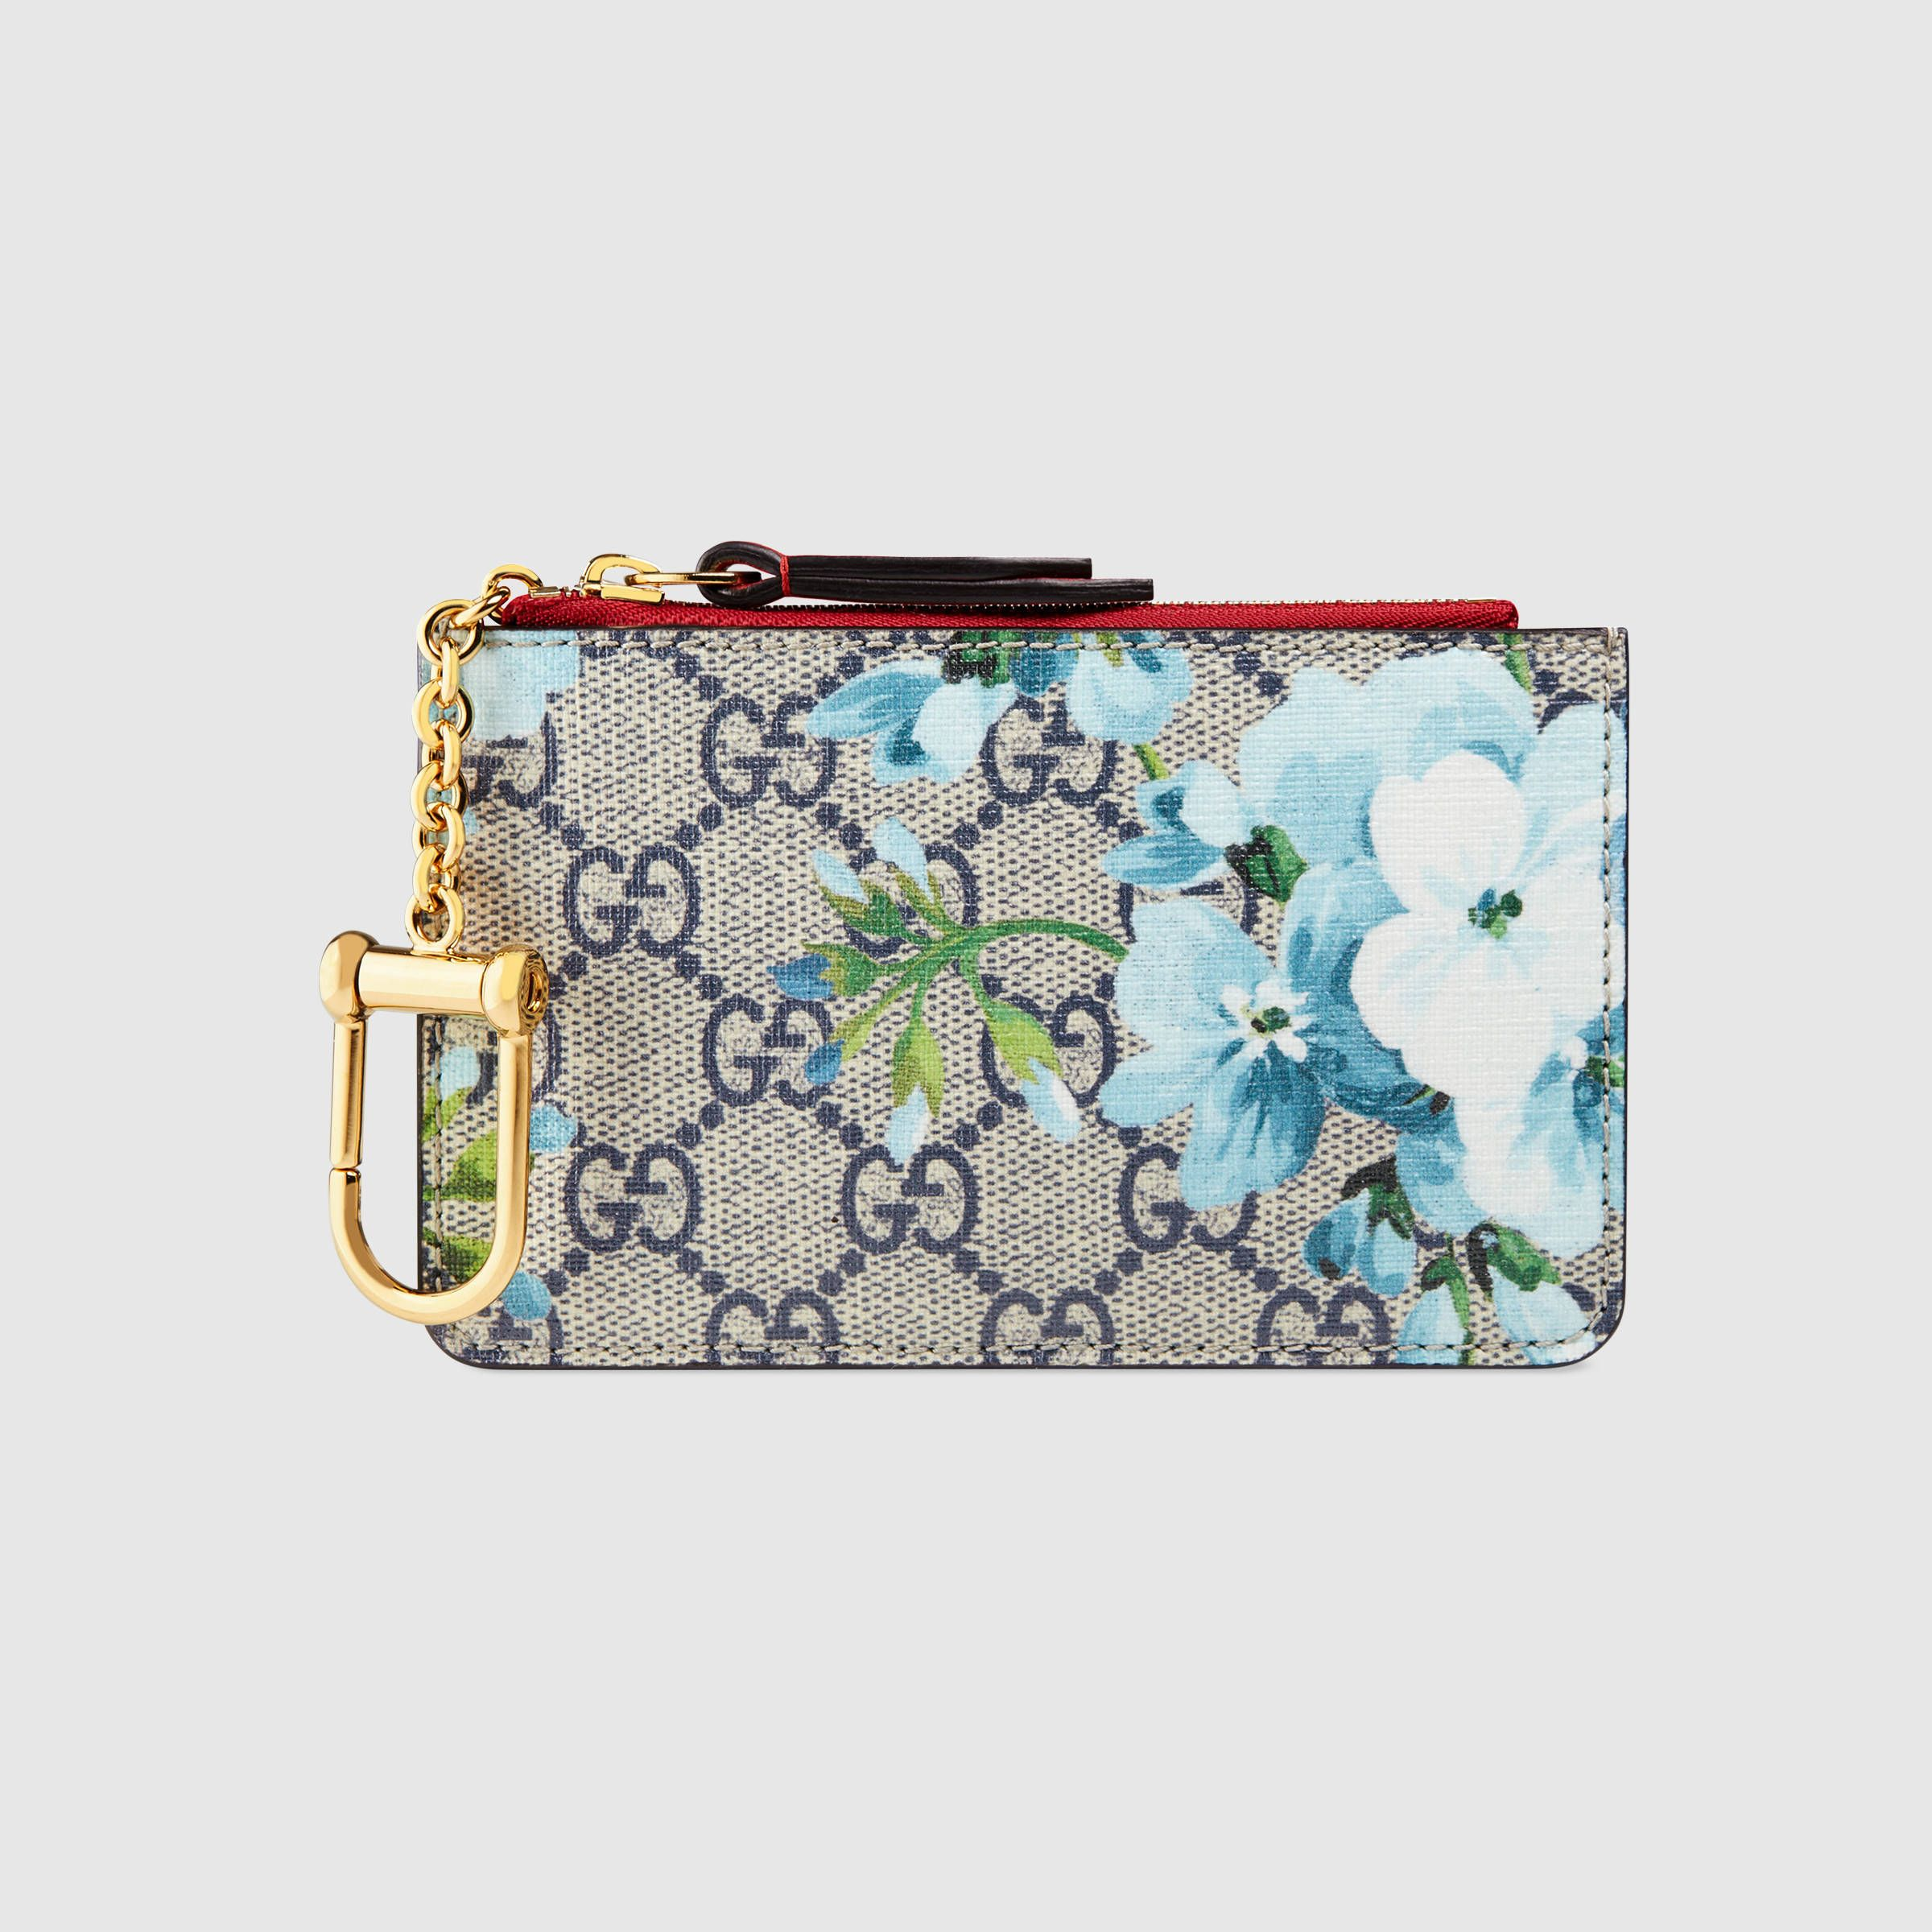 56da7785c7af GG Blooms key case Key Case, Modern Luxury, Gucci Bags, Wallets For Women